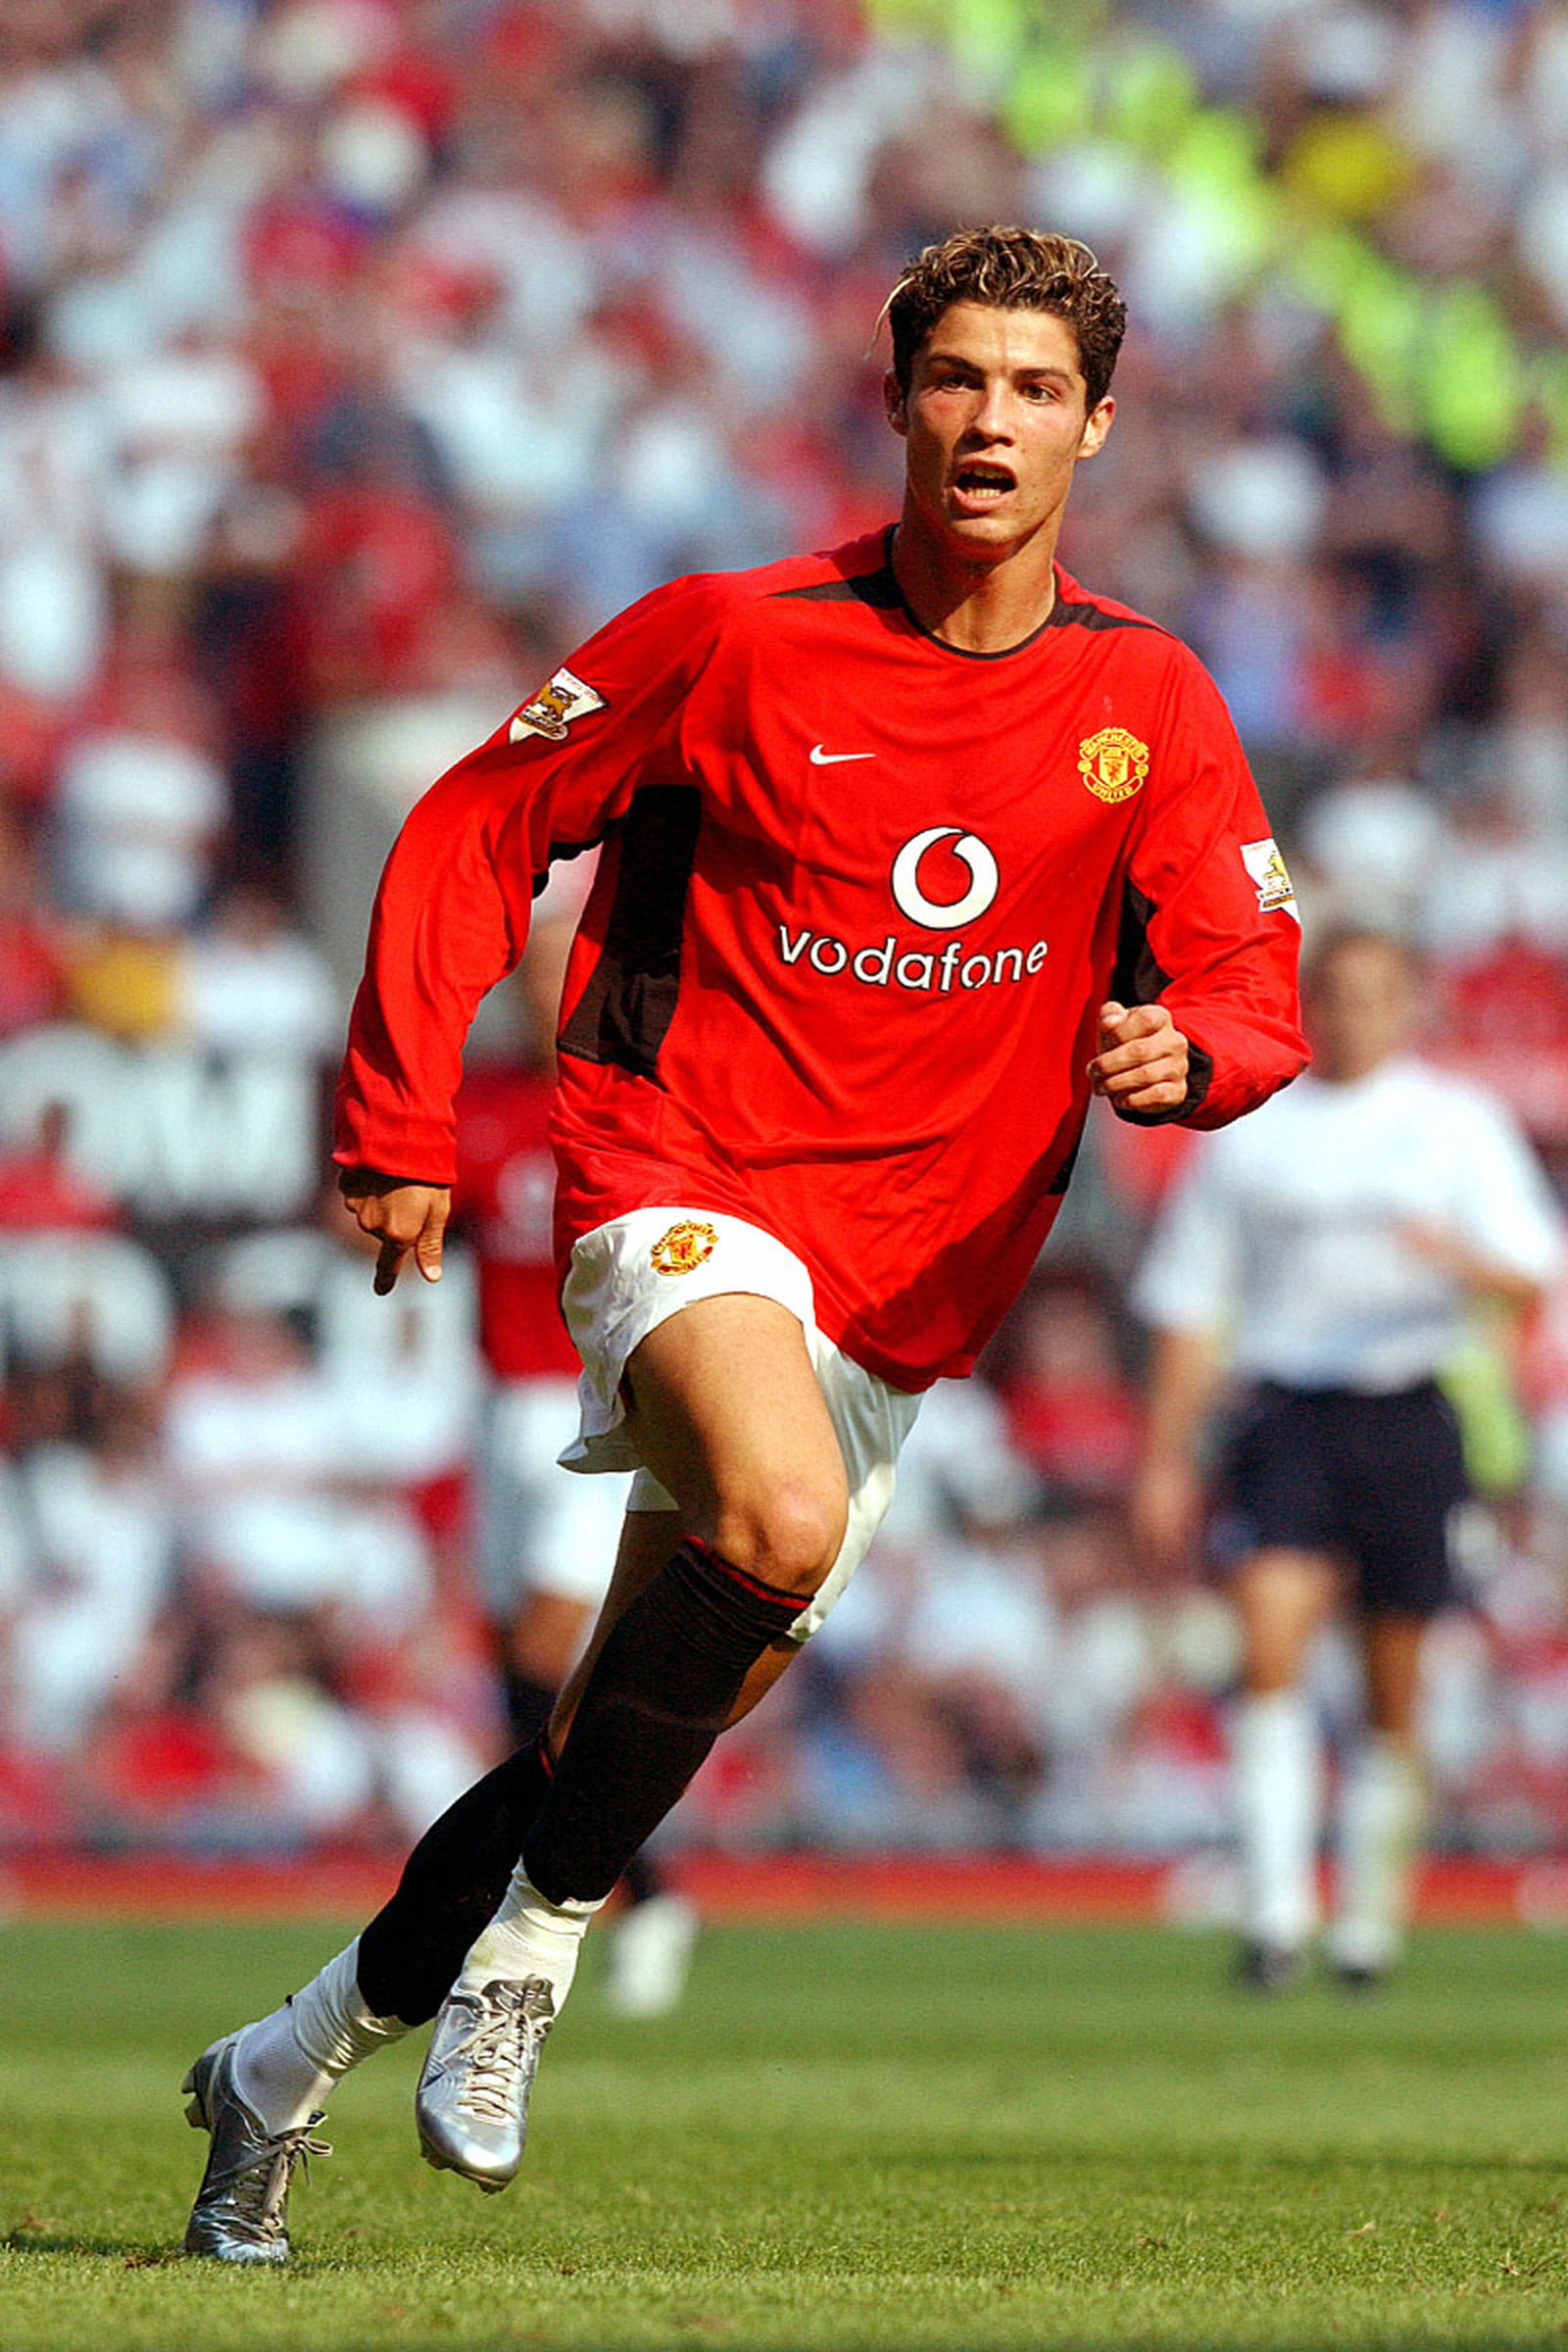 Ronaldo in action during the FA Barclaycard Premiership match between Manchester United v Bolton Wanderers at Old Trafford on August 16, 2003 in Manchester, England.